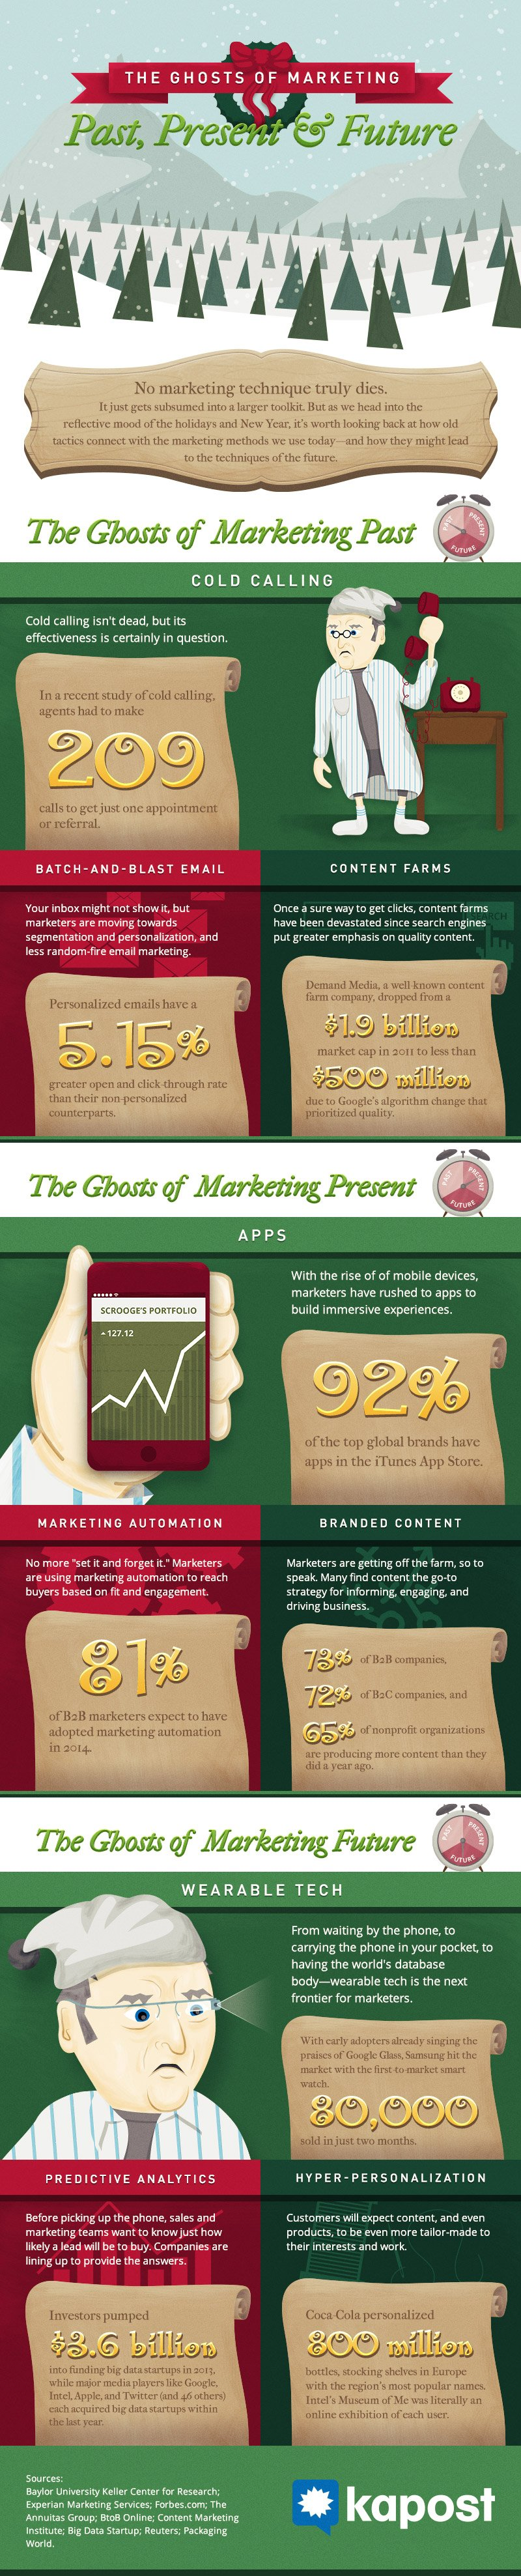 The Ghosts of Marketing [Infographic]